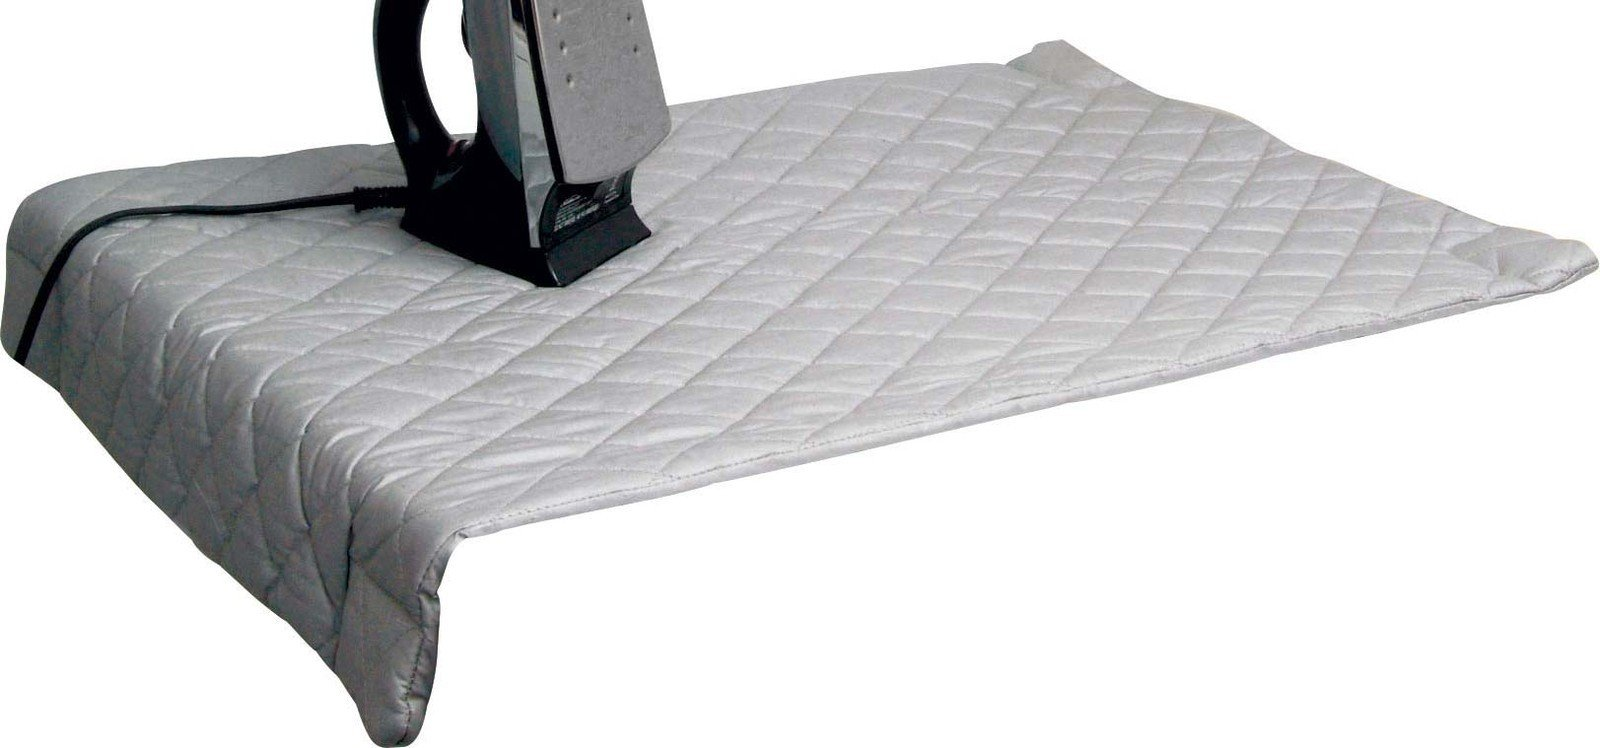 Astar Magnetic Ironing Mat Double Strength Magnetic Pull Force 2 Pack by Astar (Image #1)